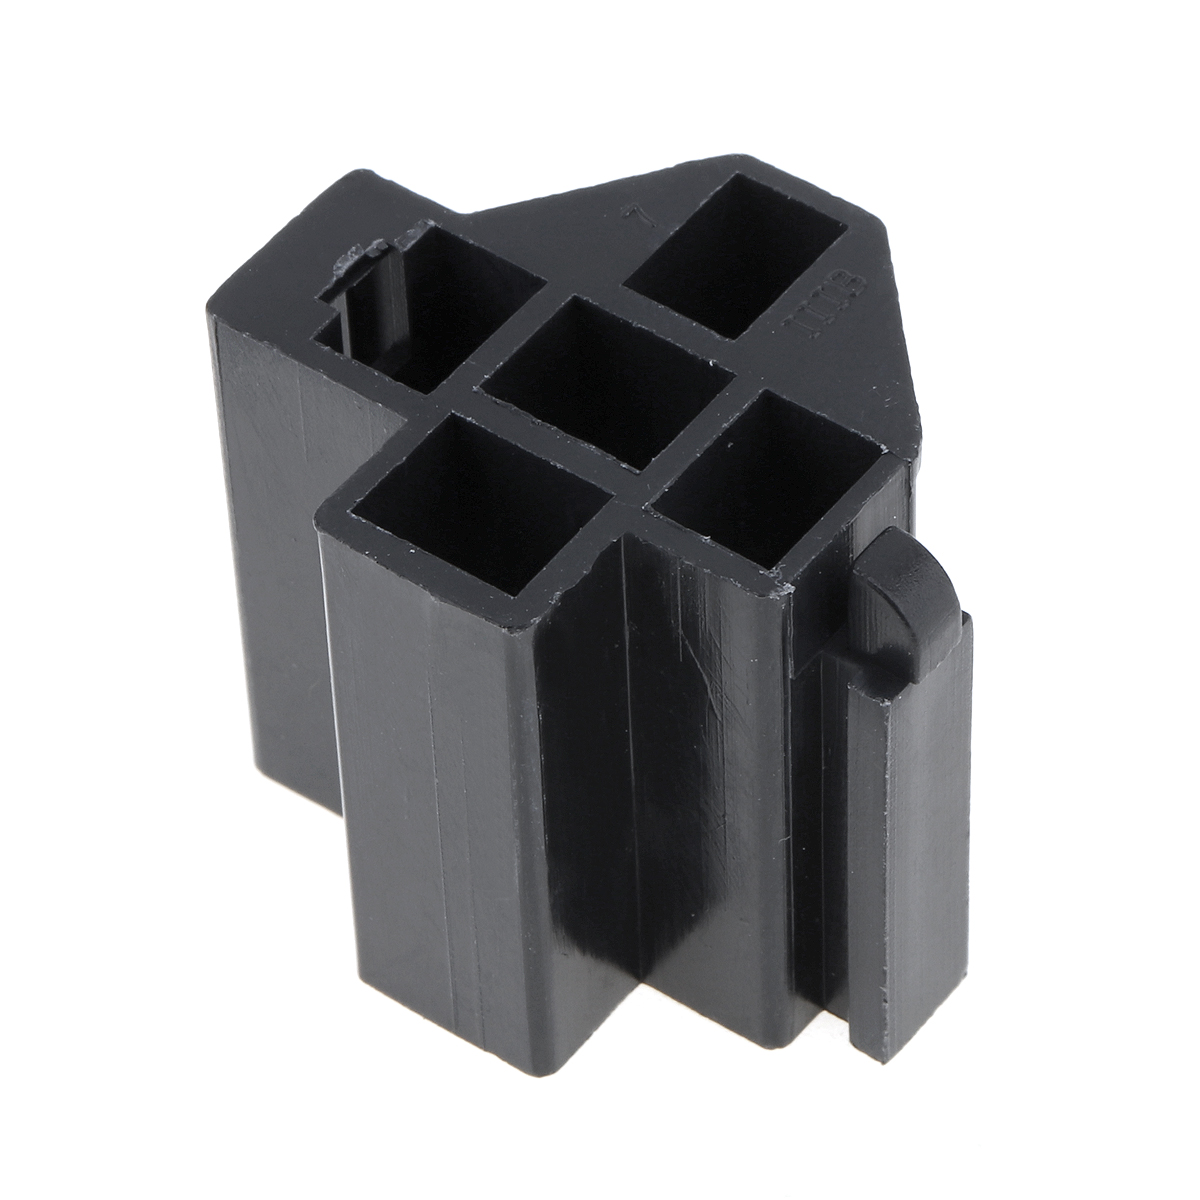 6 3mm Car Vehicle 5 Pin Relay Socket Connector Holder With